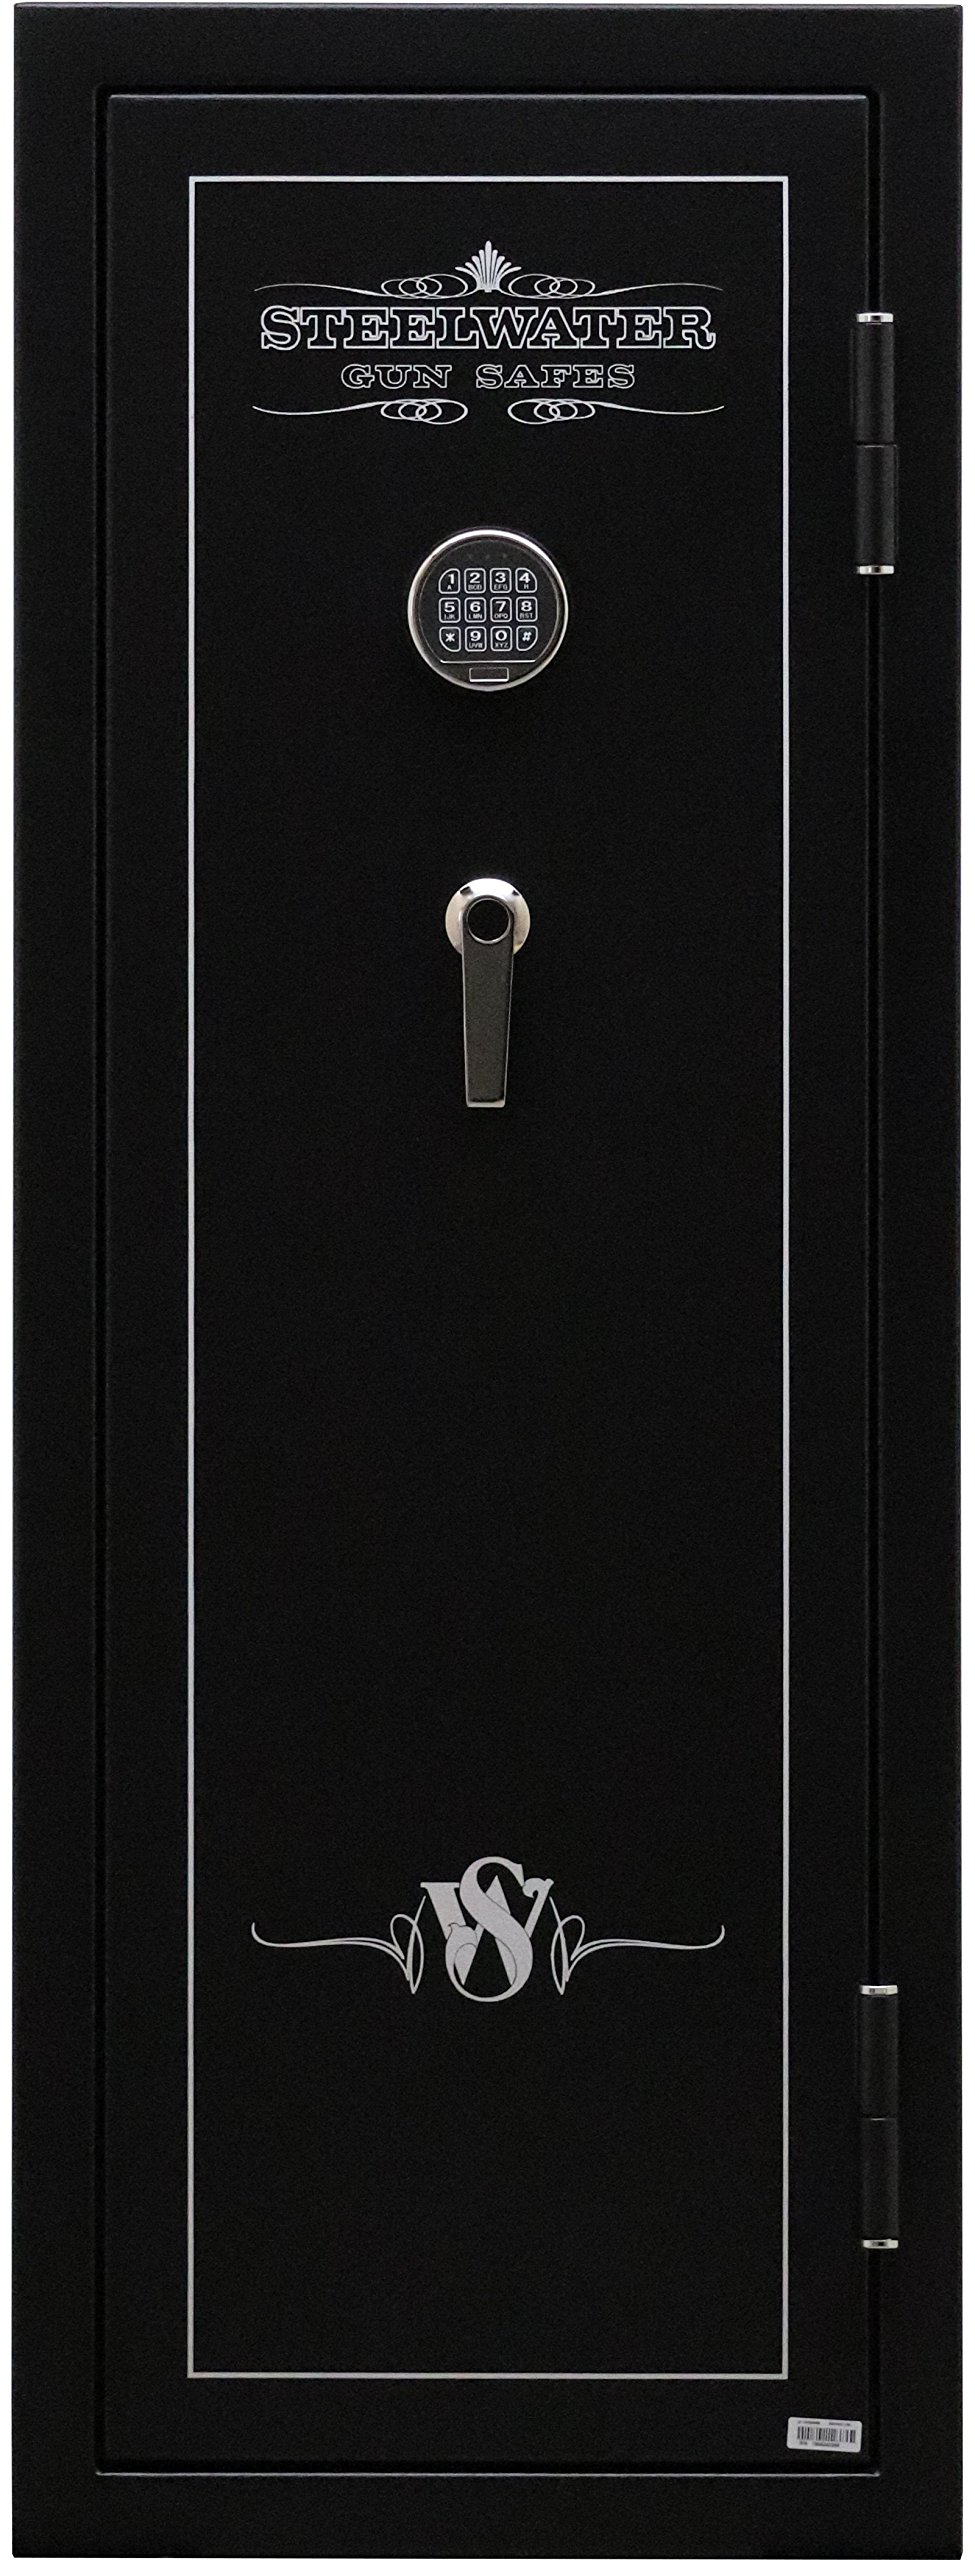 New and Improved Steelwater Standard Duty 16 Long Gun Fire Protection for 60 Minutes AMEGS592216-BLK by Steelwater Gun Safes (Image #3)